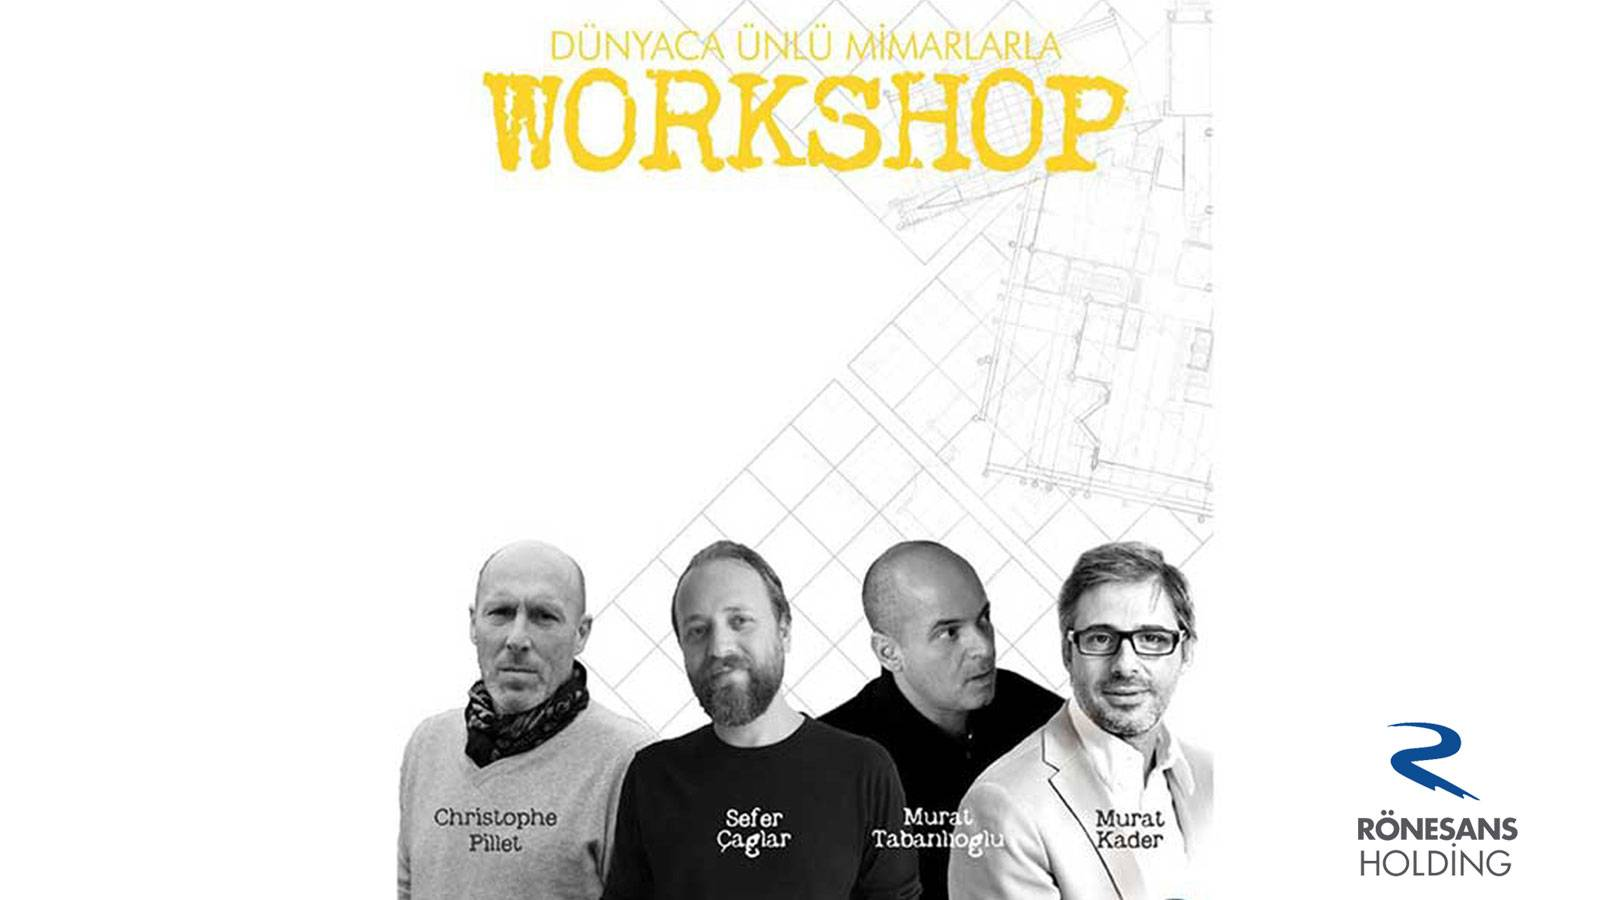 20.02.2016 Murat Kader participated a workshop with architecture students